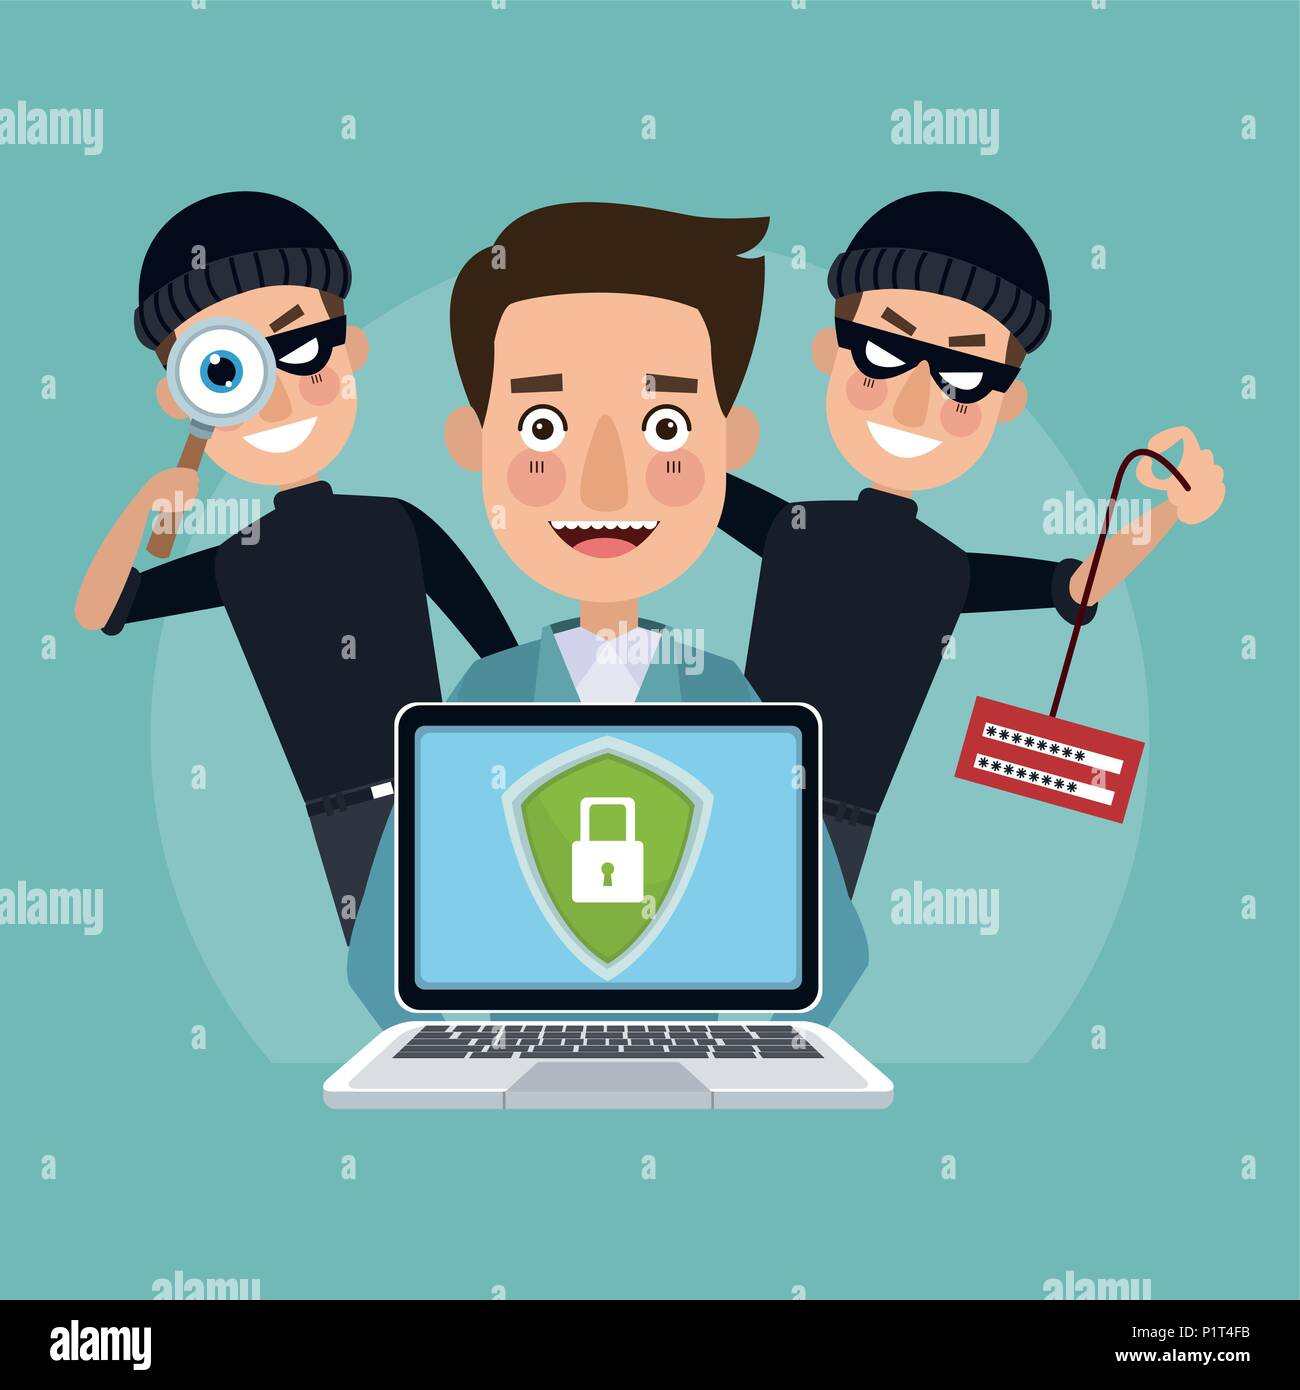 Hacker and security system - Stock Vector